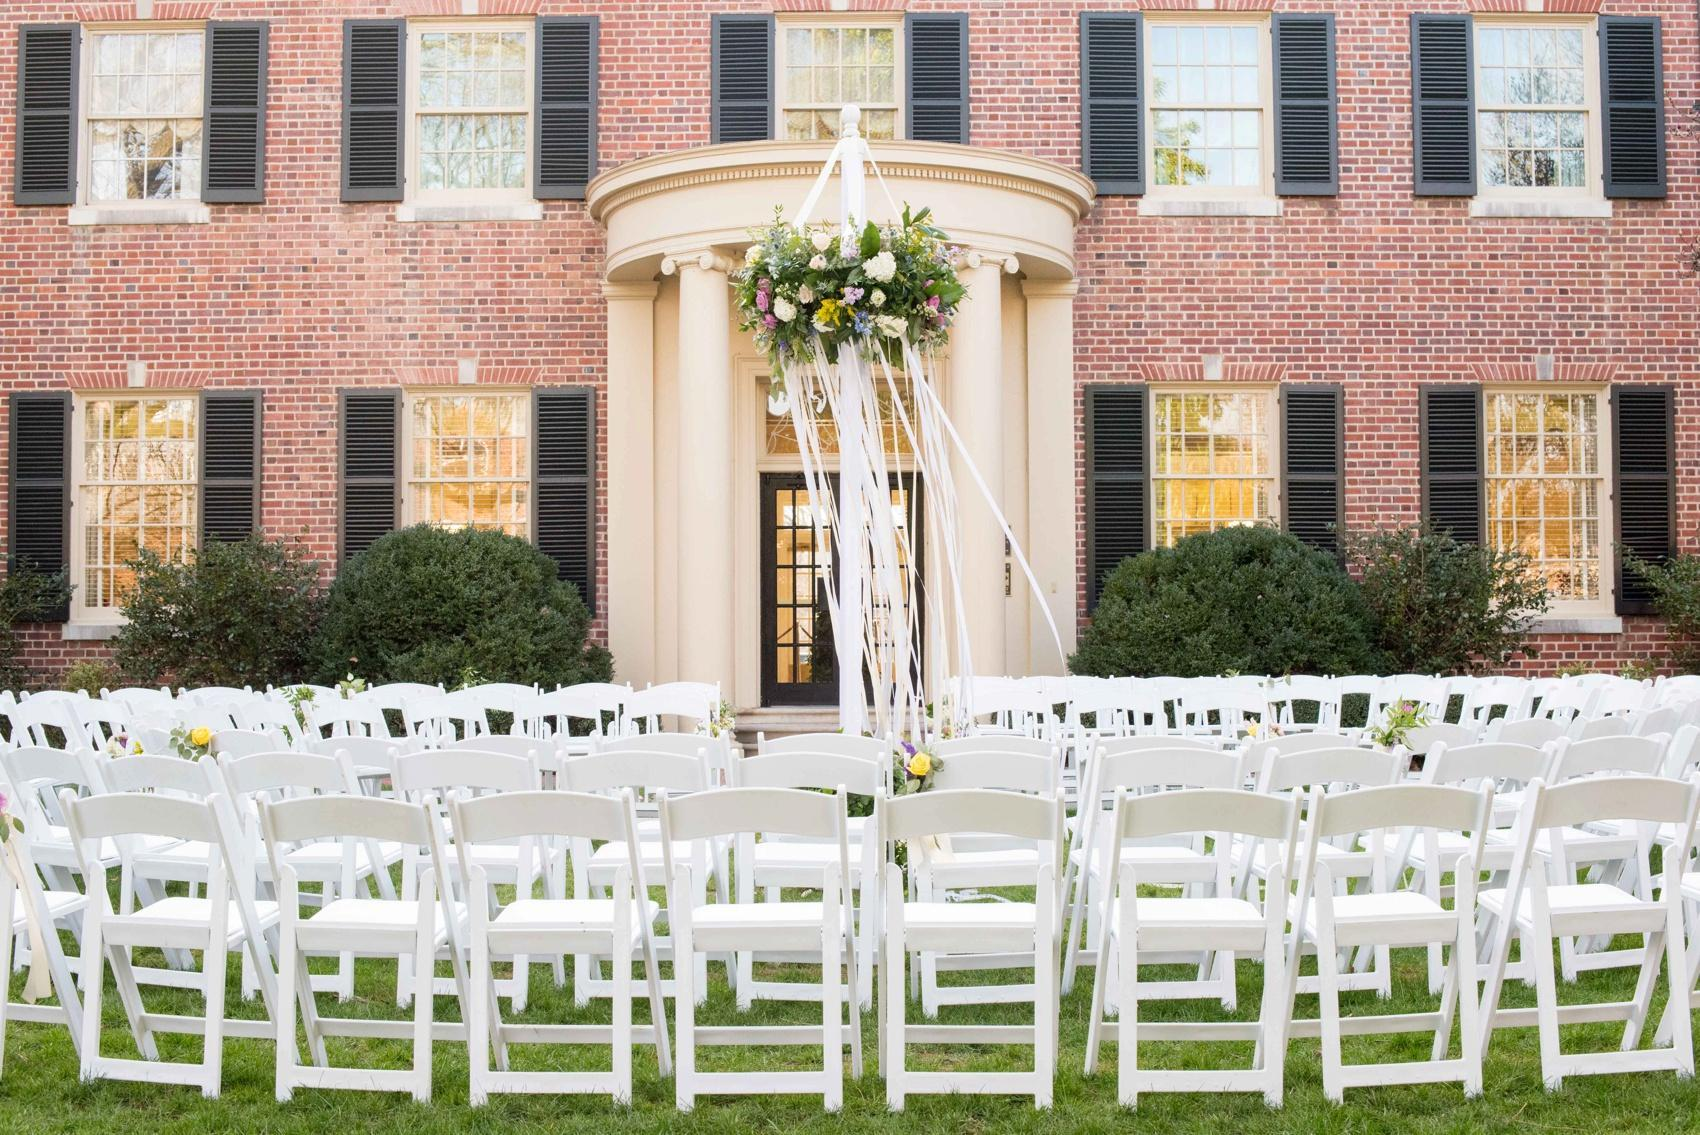 Ceremony chairs set up at The Carolina Inn in North Carolina, photographed by Mikkel Paige Photography.